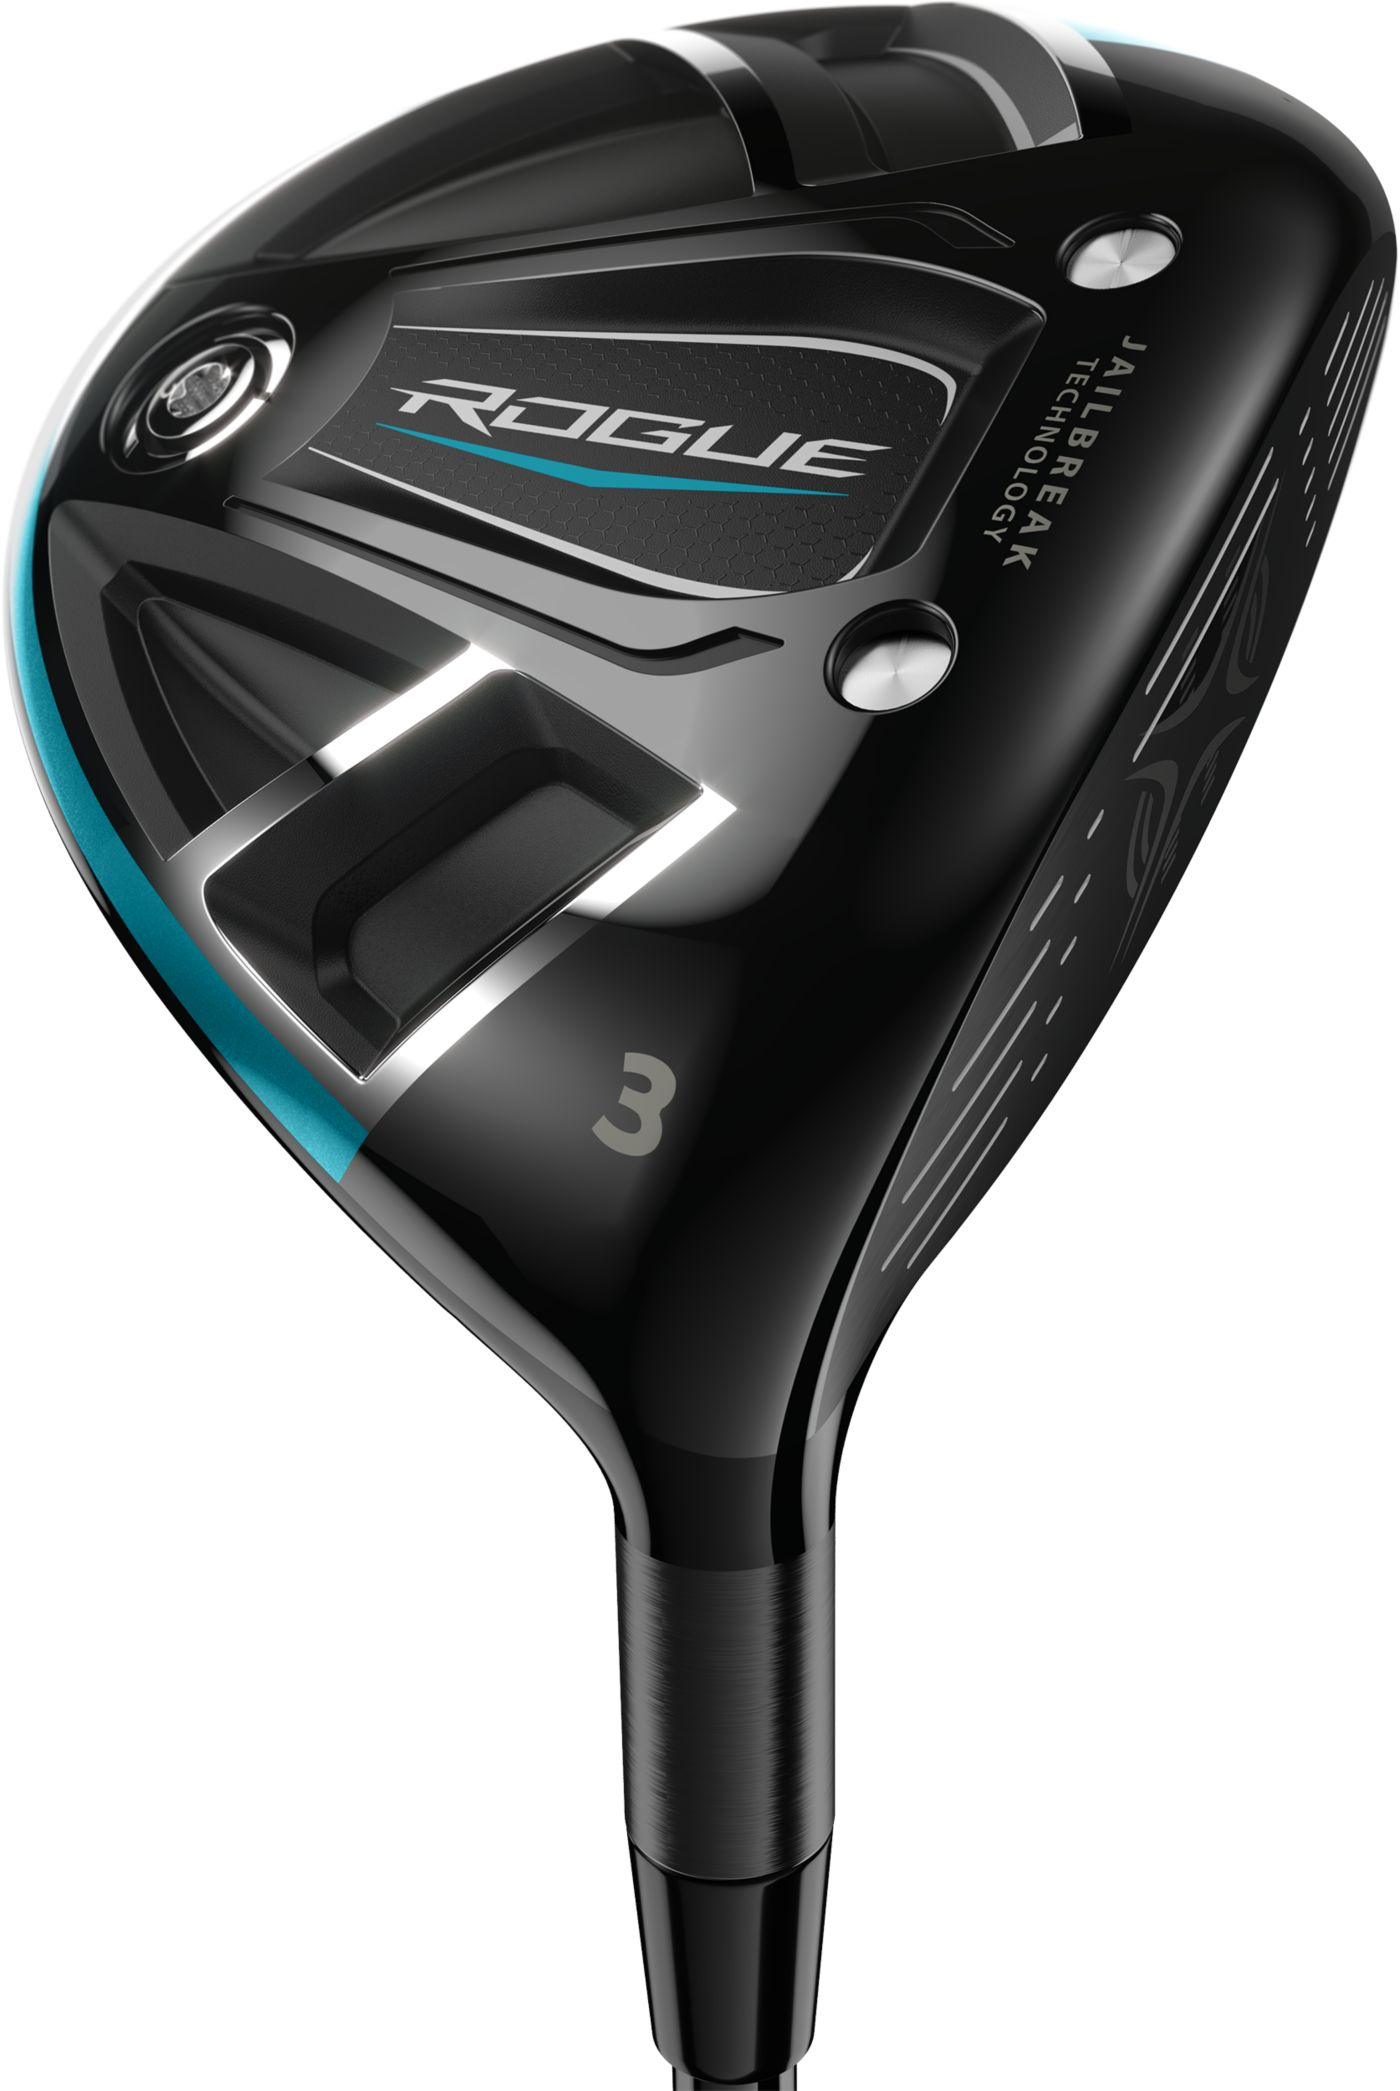 Callaway Women's Rogue Fairway Wood